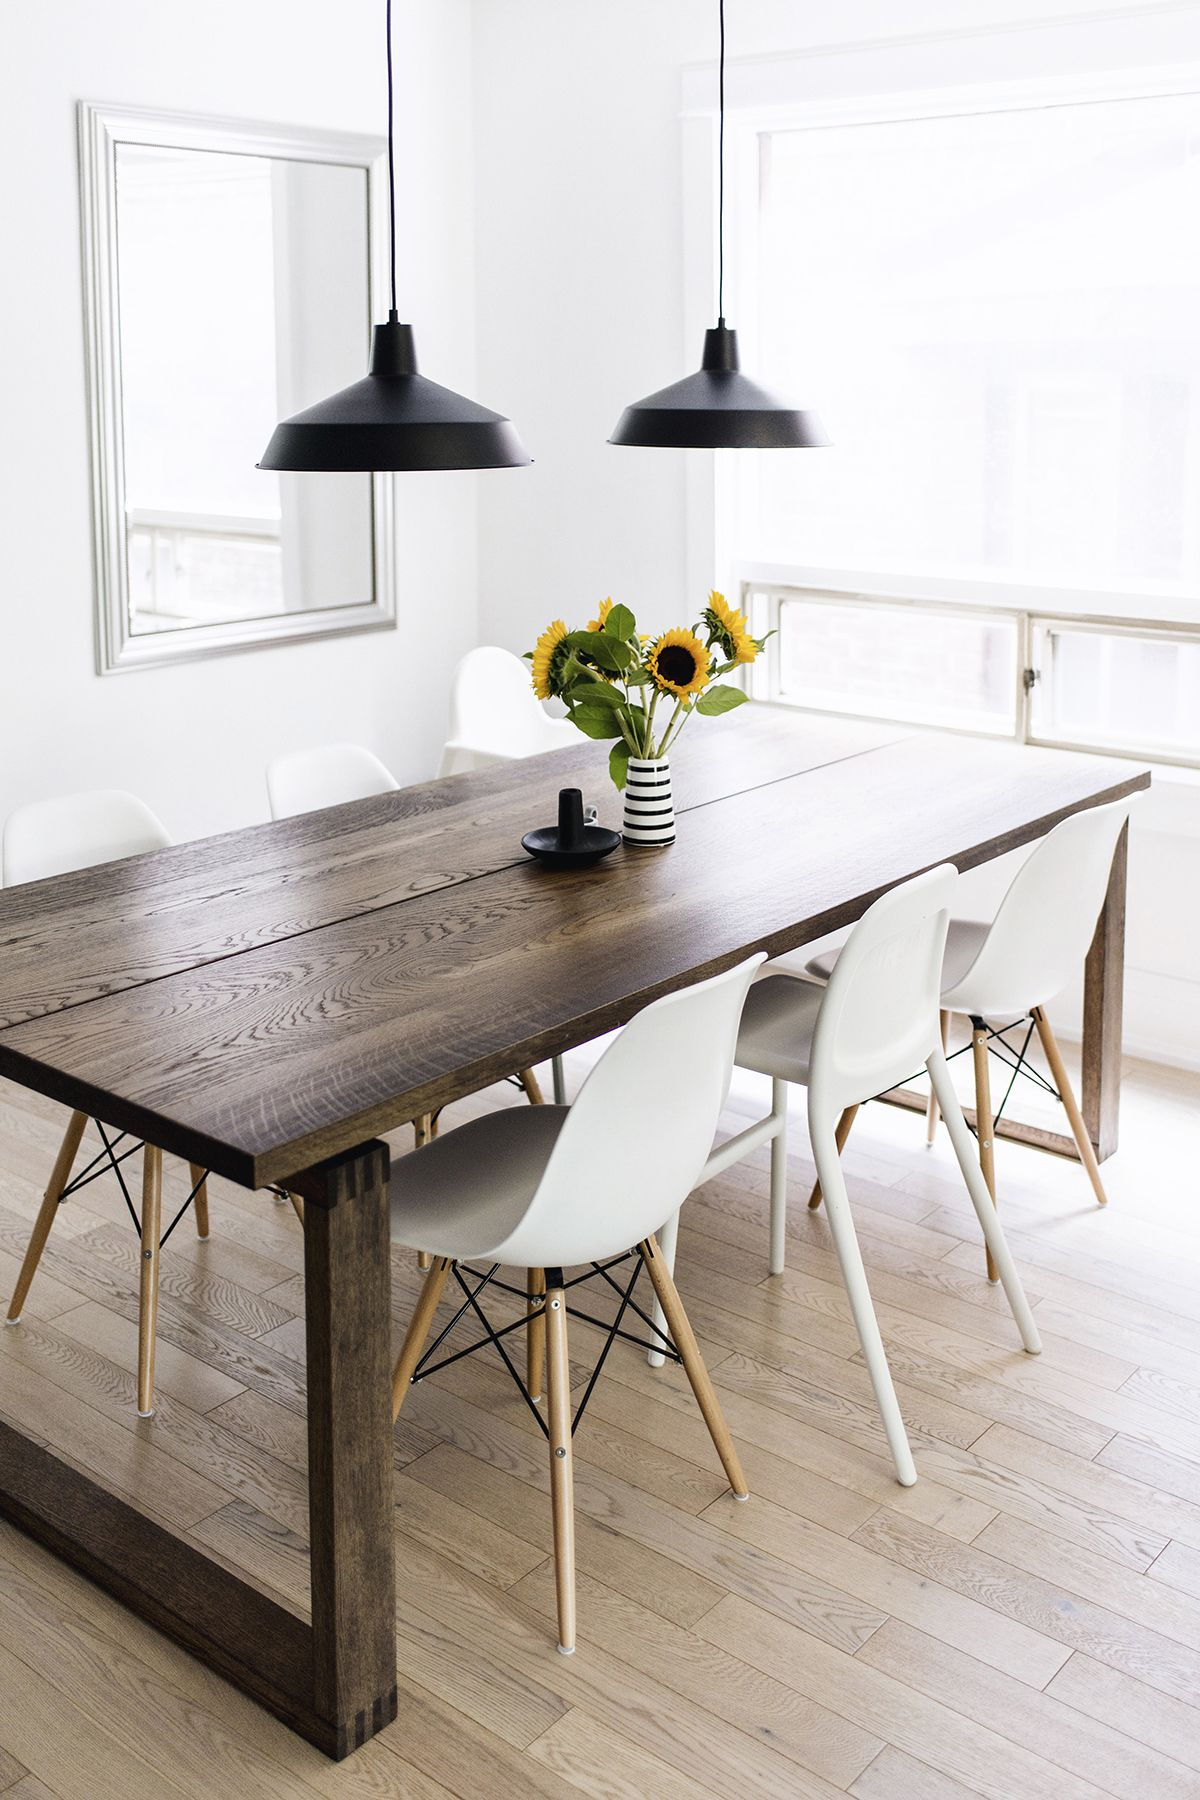 Scandinavianinspired dining room Mrbylnga table Eames chairs